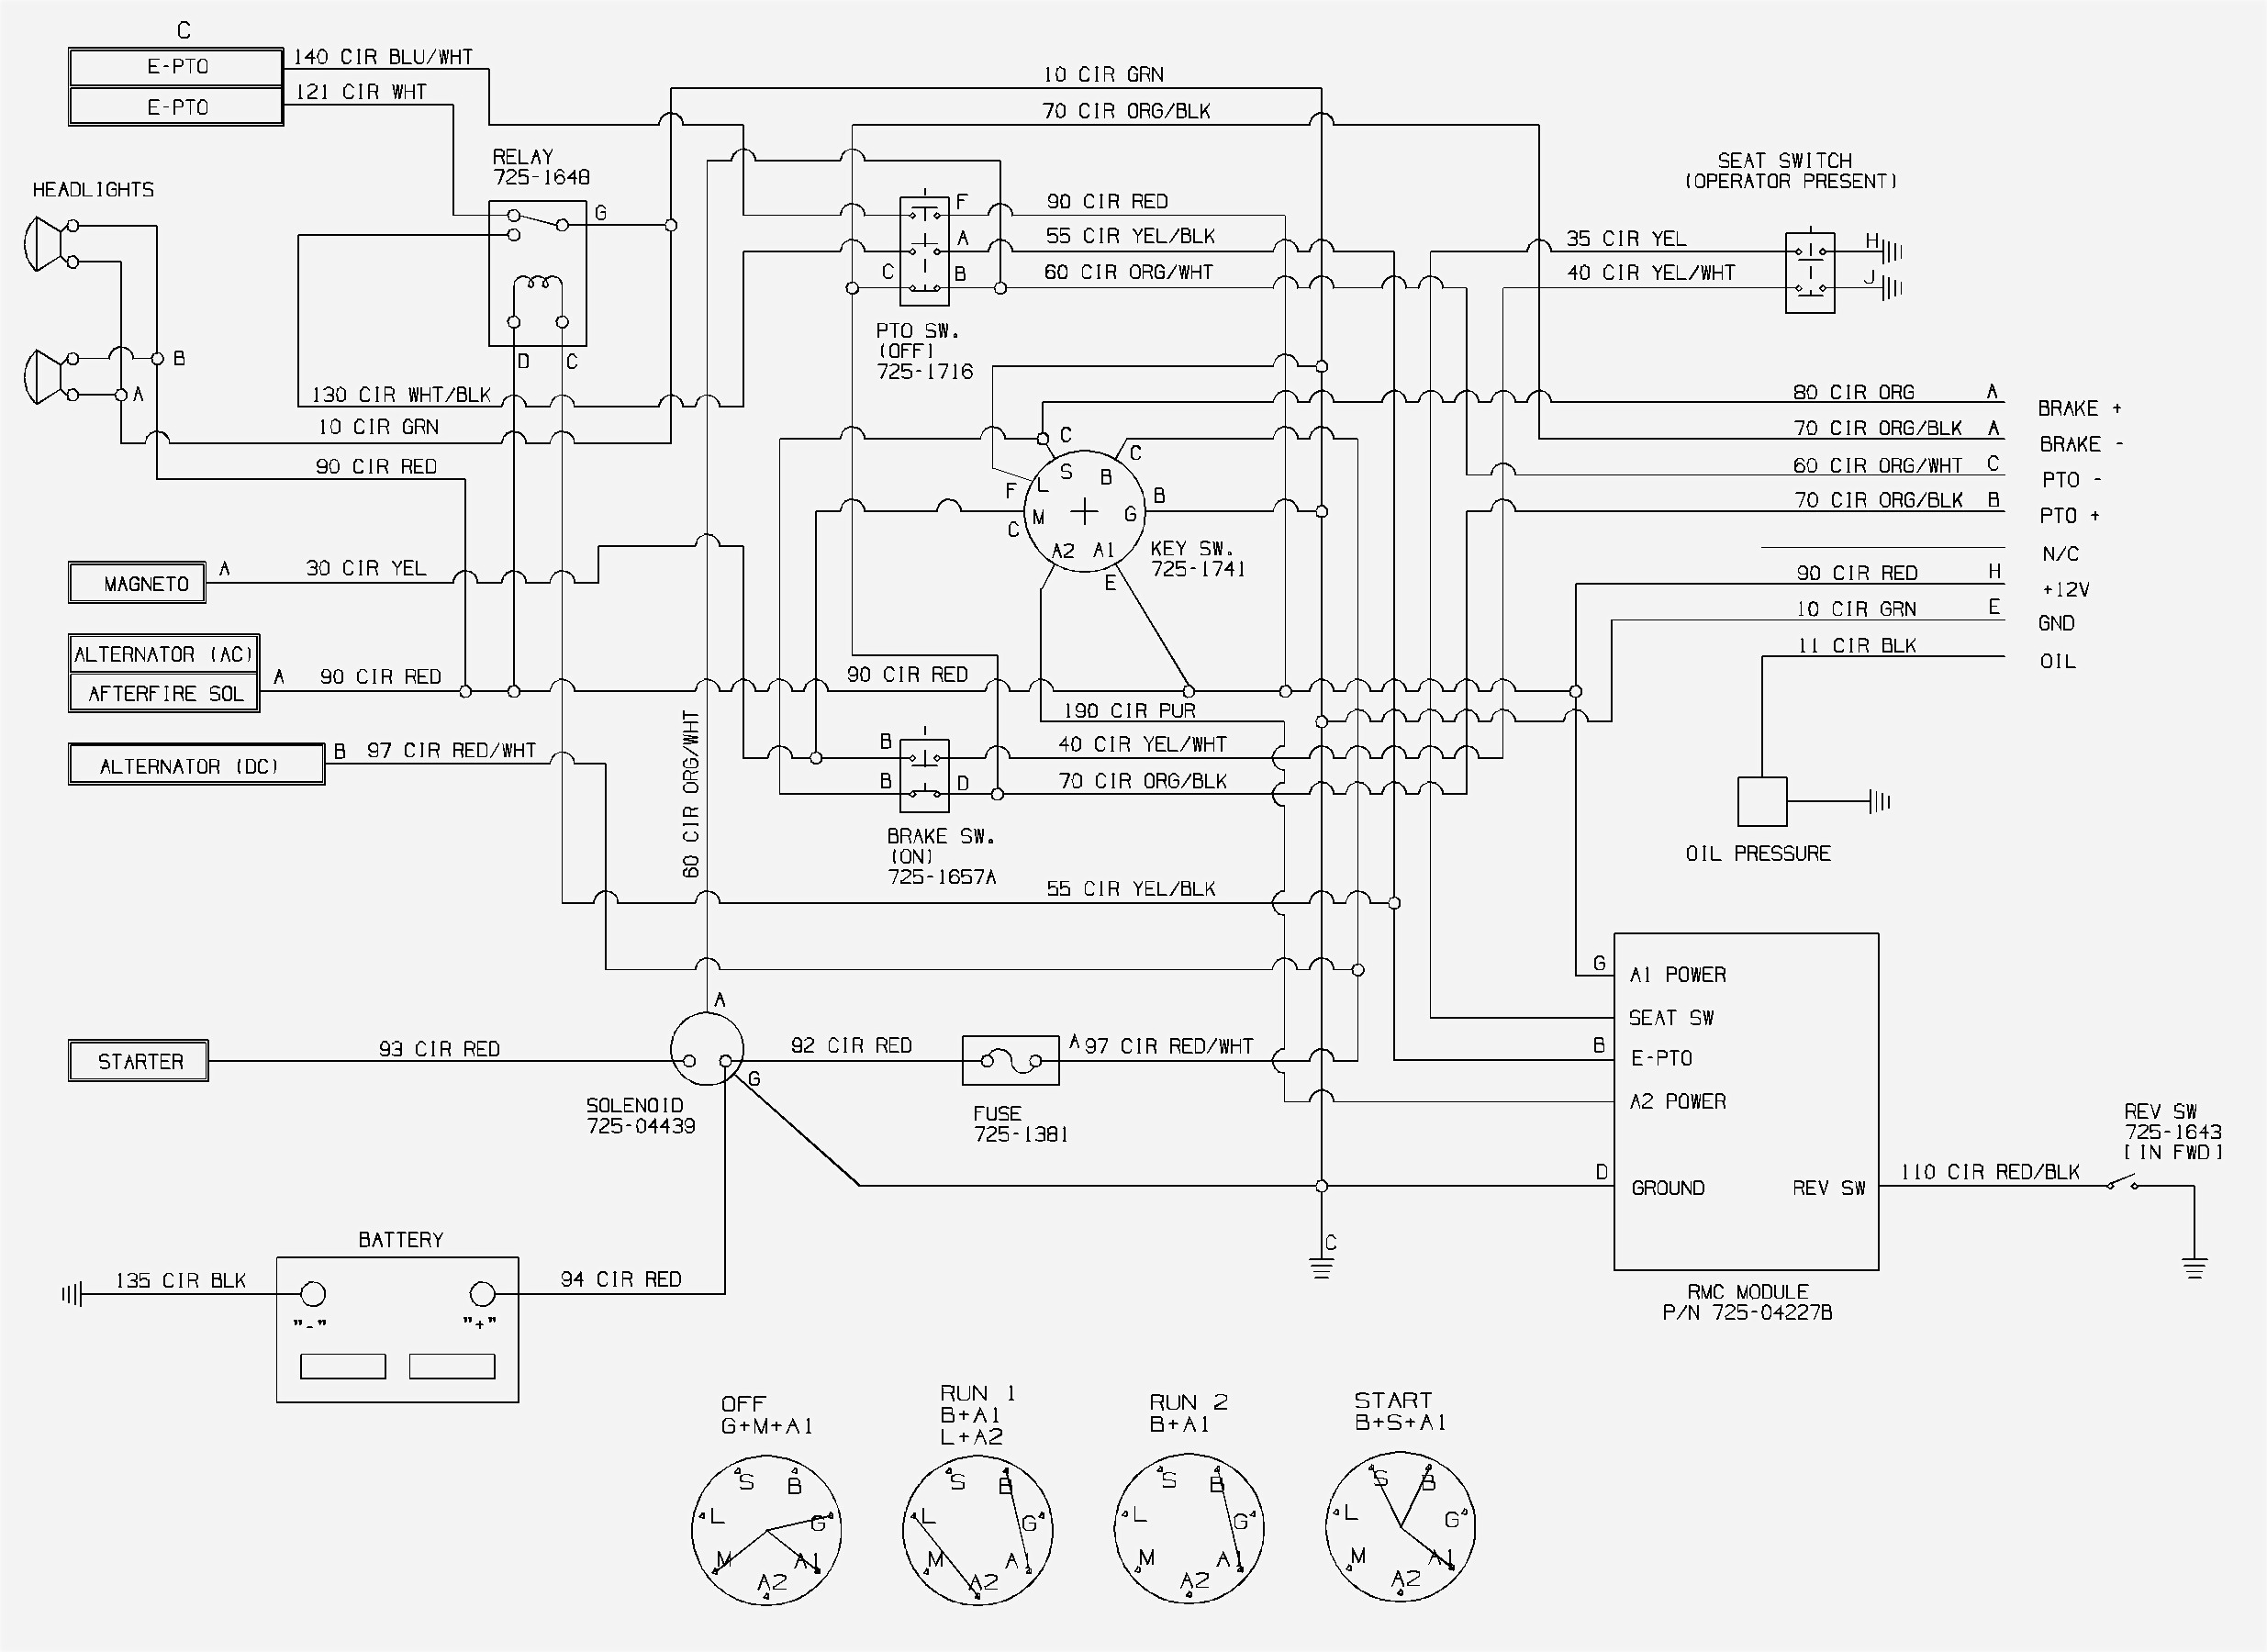 cub cadet lt1050 wiring diagram new wiring diagram cub cadet lt1045 amp cub cadet ltx 1045 deck belt of cub cadet lt1050 wiring diagram?quality\\\\\\\\\\\\\\\\\\\\\\\\\\\\\\\\\\\\\\\\\\\\\\\\\\\\\\\\\\\\\\\\\\\\\\\\\\\\\\\\\\\\\\\\\\\\\\\\\\\\\\\\\\\\\\\\\\\\\\\\\\\\\\\\\\\\\\\\\\\\\\\\\\\\\\\\\\\\\\\\\\\\\\\\\\\\\\\\\\\\\\\\\\\\\\\\\\\\\\\\\\\\\\\\\\\\\\\\\\\\\\\\\\\\\\\\\\\\\\\\\\\\\\\\\\\\\\\=80\\\\\\\\\\\\\\\\\\\\\\\\\\\\\\\\\\\\\\\\\\\\\\\\\\\\\\\\\\\\\\\\\\\\\\\\\\\\\\\\\\\\\\\\\\\\\\\\\\\\\\\\\\\\\\\\\\\\\\\\\\\\\\\\\\\\\\\\\\\\\\\\\\\\\\\\\\\\\\\\\\\\\\\\\\\\\\\\\\\\\\\\\\\\\\\\\\\\\\\\\\\\\\\\\\\\\\\\\\\\\\\\\\\\\\\\\\\\\\\\\\\\\\\\\\\\\\\&strip\\\\\\\\\\\\\\\\\\\\\\\\\\\\\\\\\\\\\\\\\\\\\\\\\\\\\\\\\\\\\\\\\\\\\\\\\\\\\\\\\\\\\\\\\\\\\\\\\\\\\\\\\\\\\\\\\\\\\\\\\\\\\\\\\\\\\\\\\\\\\\\\\\\\\\\\\\\\\\\\\\\\\\\\\\\\\\\\\\\\\\\\\\\\\\\\\\\\\\\\\\\\\\\\\\\\\\\\\\\\\\\\\\\\\\\\\\\\\\\\\\\\\\\\\\\\\\\=all cub 1450 pto switch wiring diagram wiring diagram